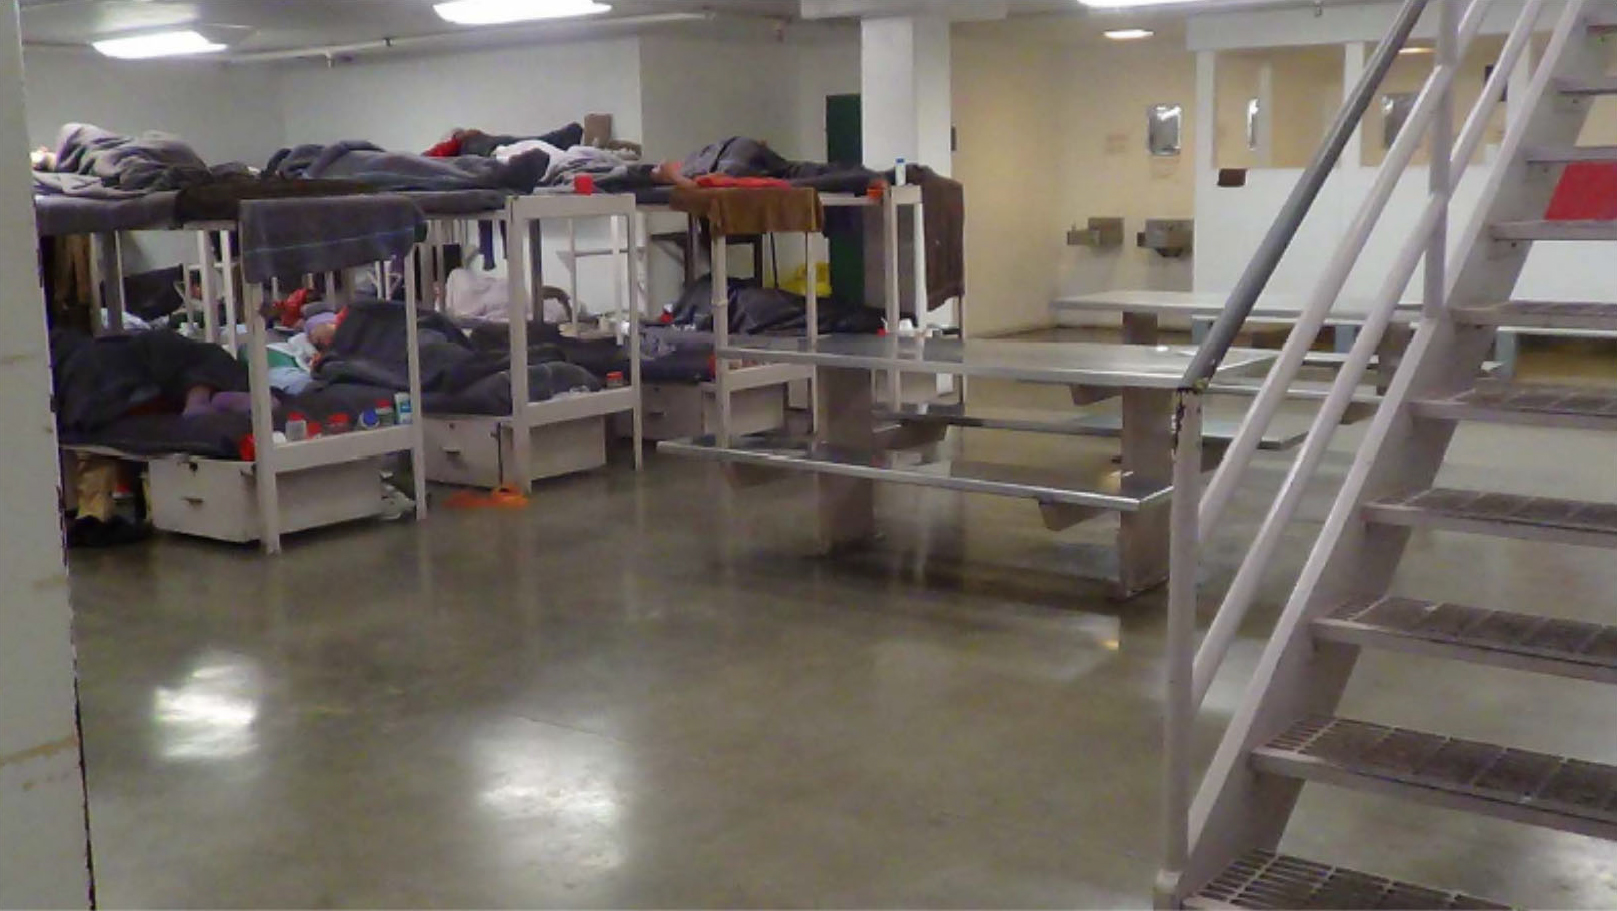 Yuba County Jail C Pod, a row of bunk beds spaced only 2 ft apart. Photo taken in 2015.